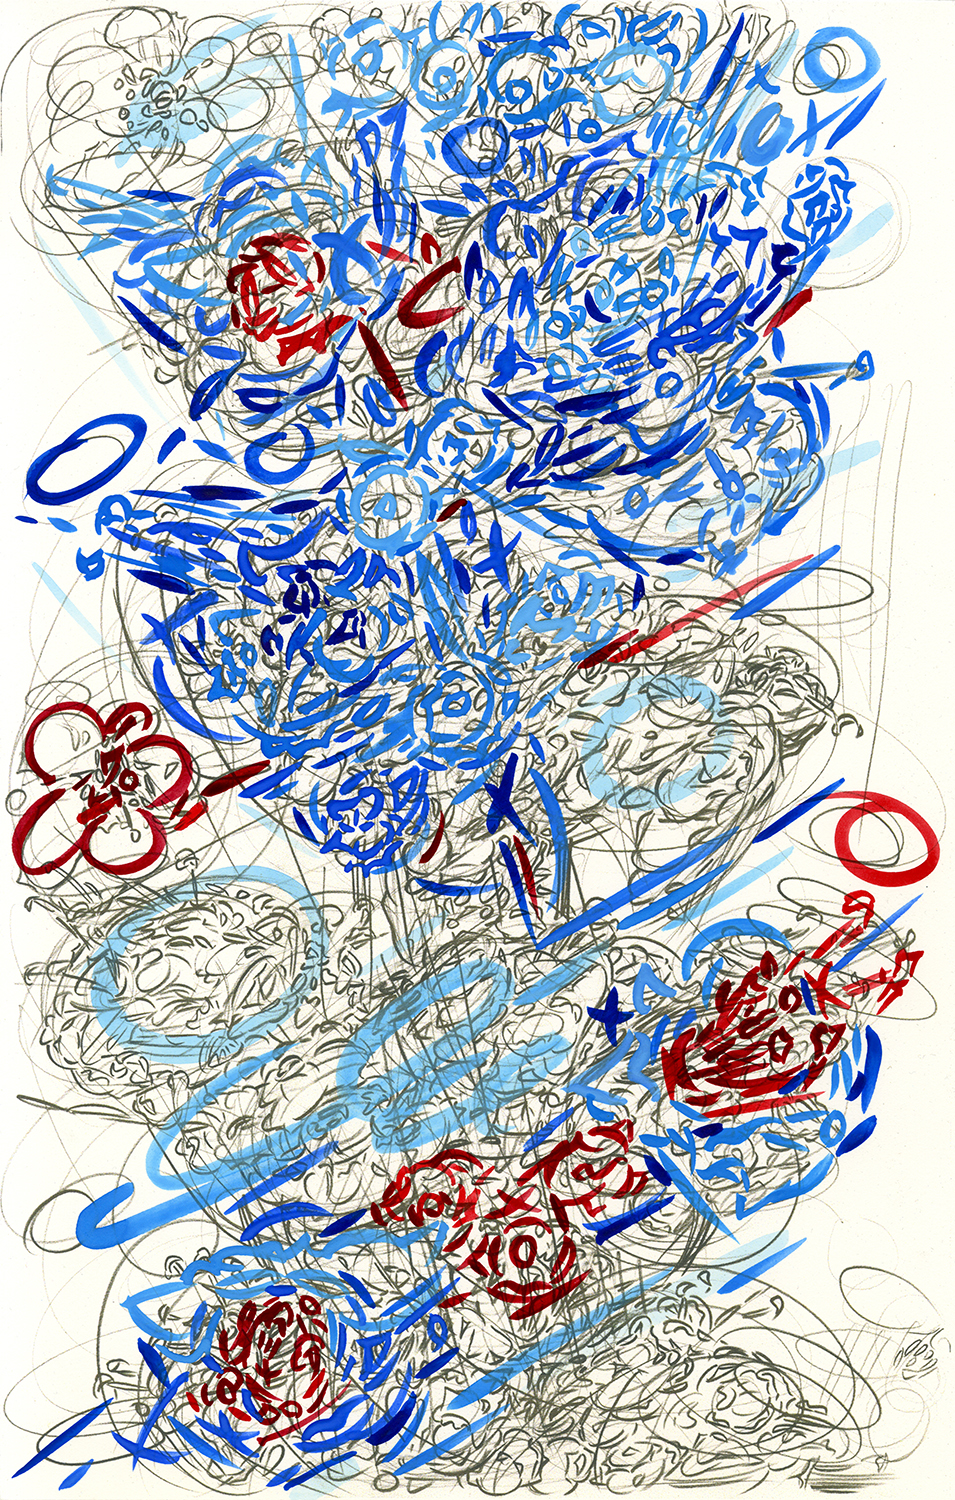 """Significant Transport Color #1 , 2016, pencil and gouache on paper, 17"""" x 11"""""""